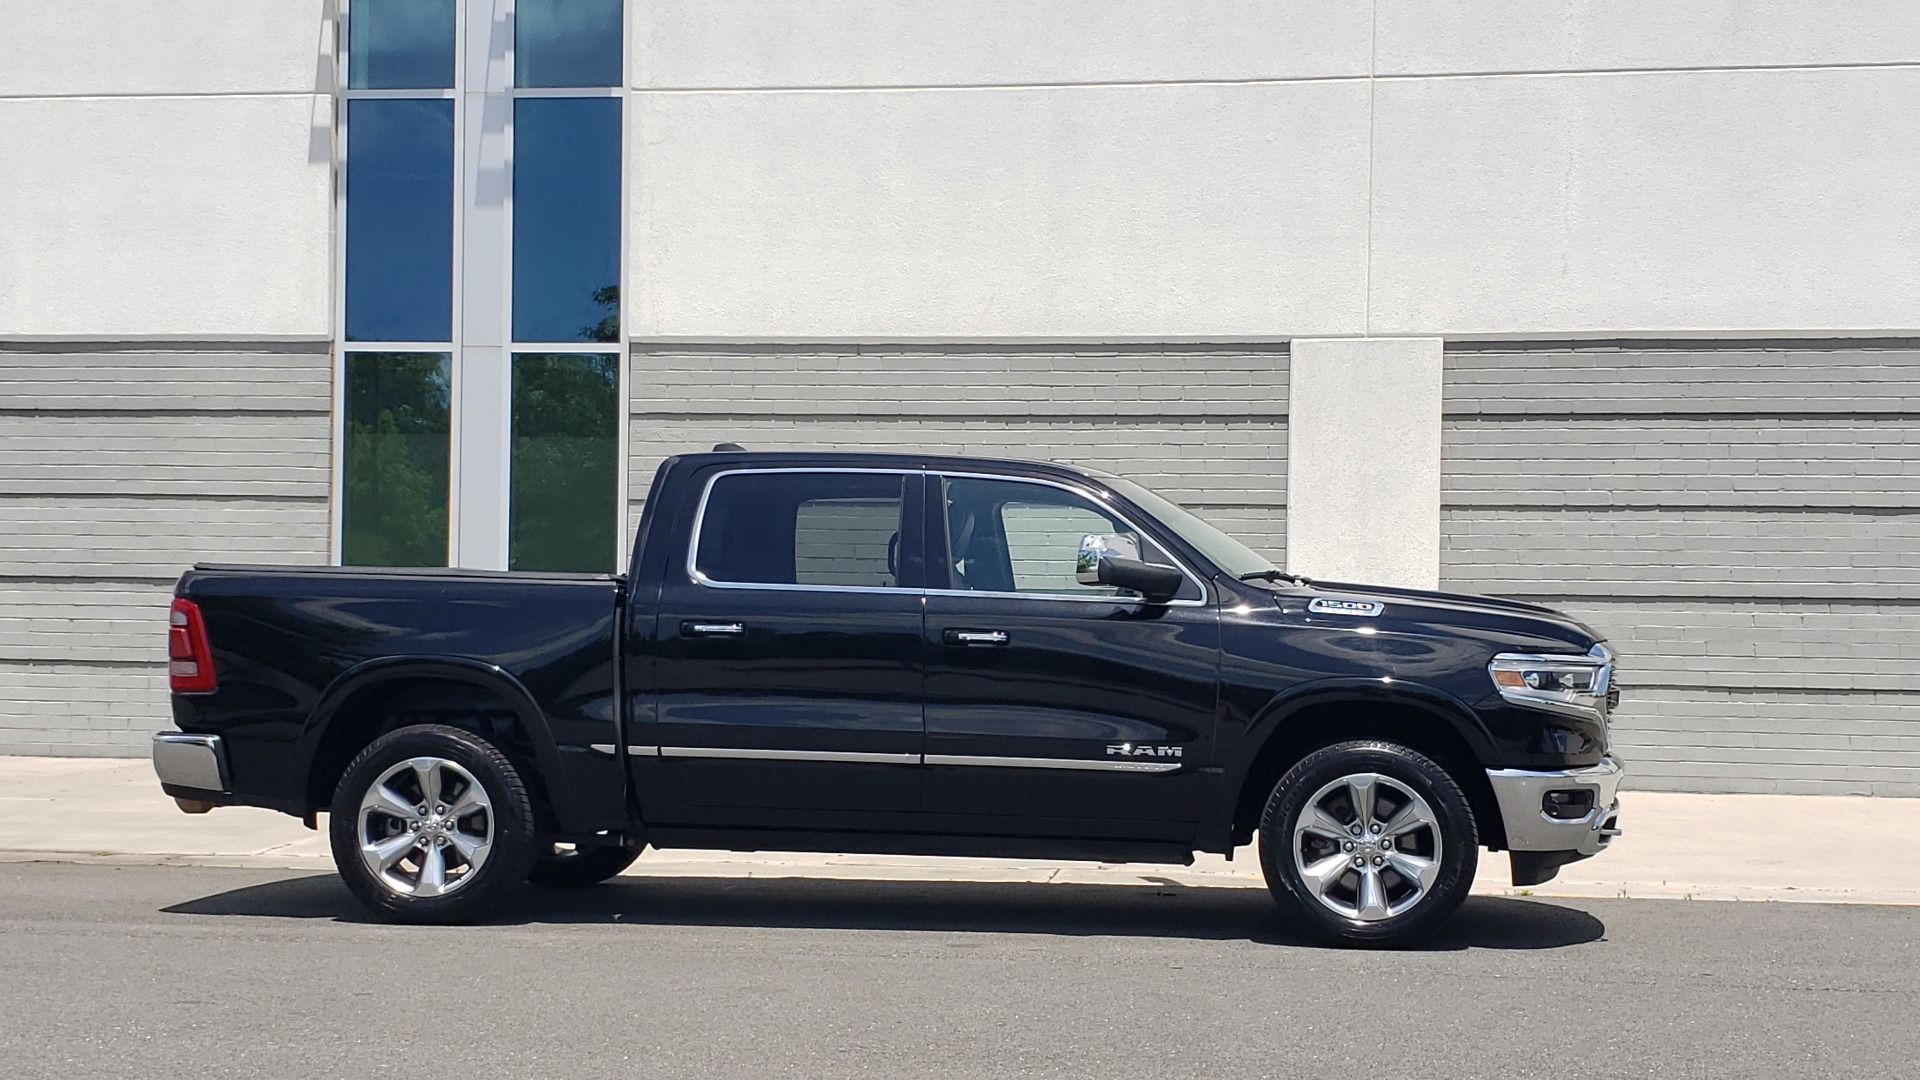 Used 2019 Ram 1500 LIMITED / NAV / PANO-ROOF / TOW PKG / H/K SND / REARVIEW for sale $46,995 at Formula Imports in Charlotte NC 28227 4